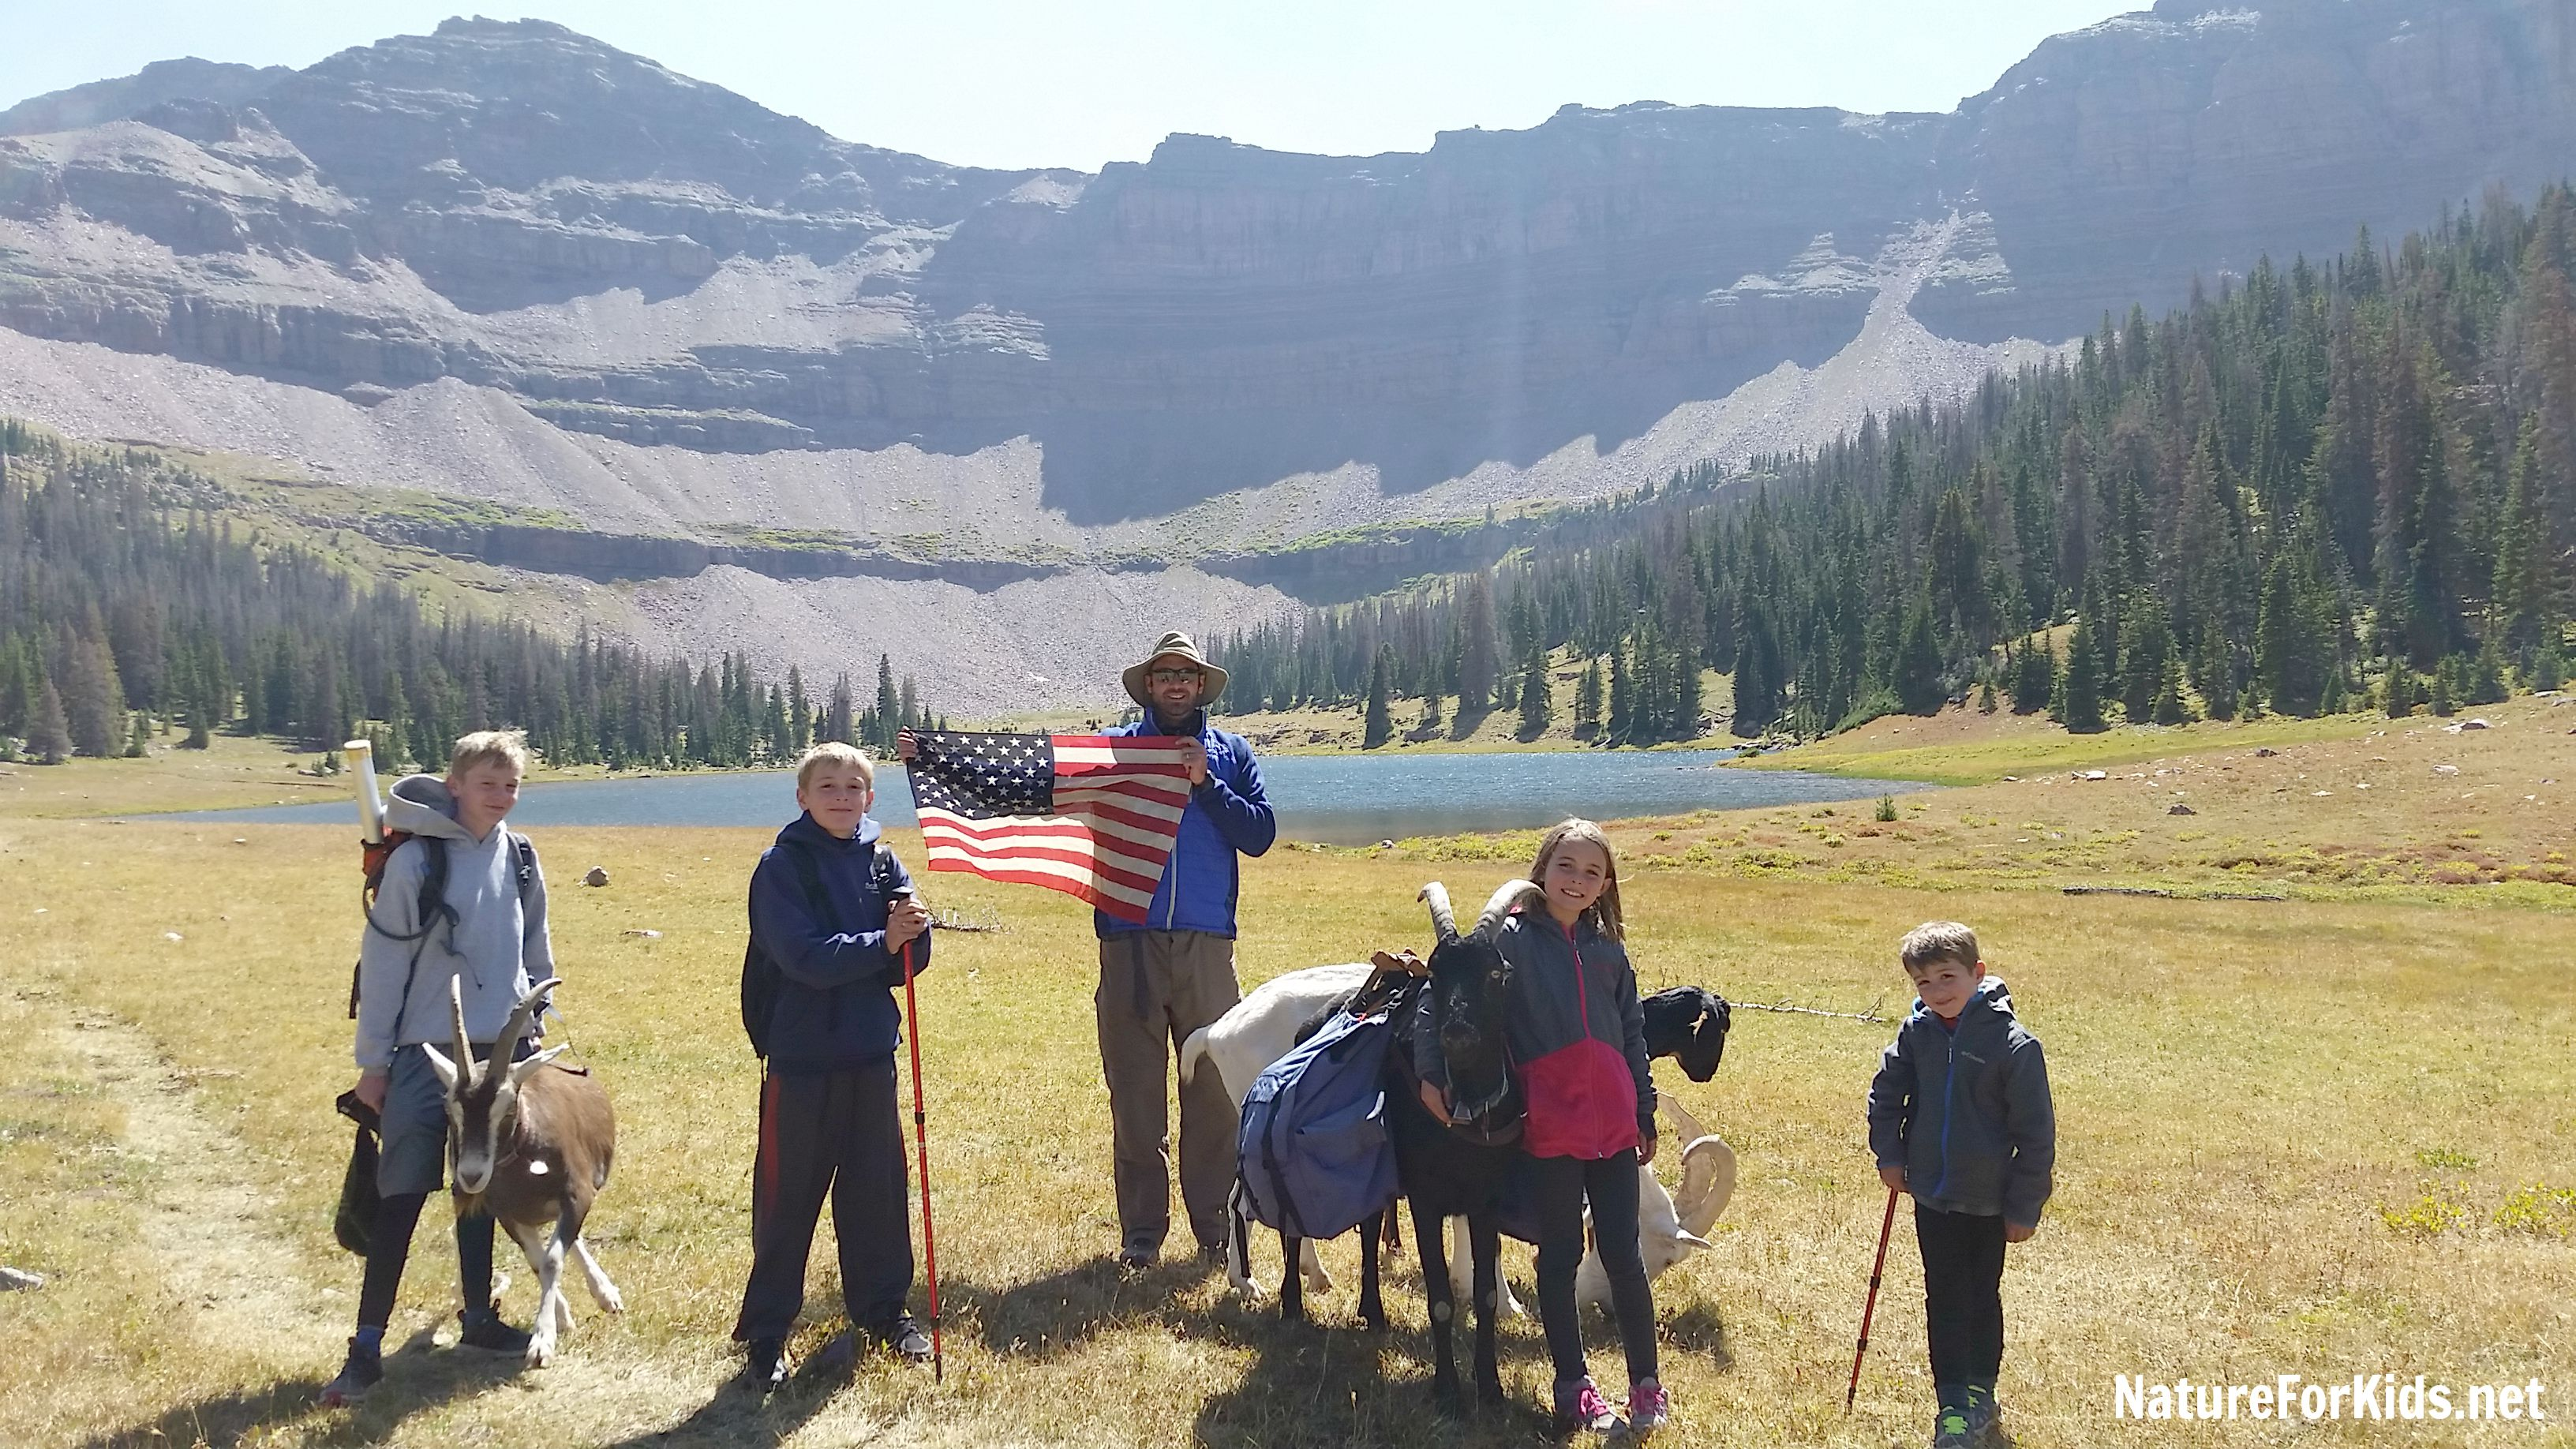 Backpacking With Kids Made Easy Thanks To Pack Goats